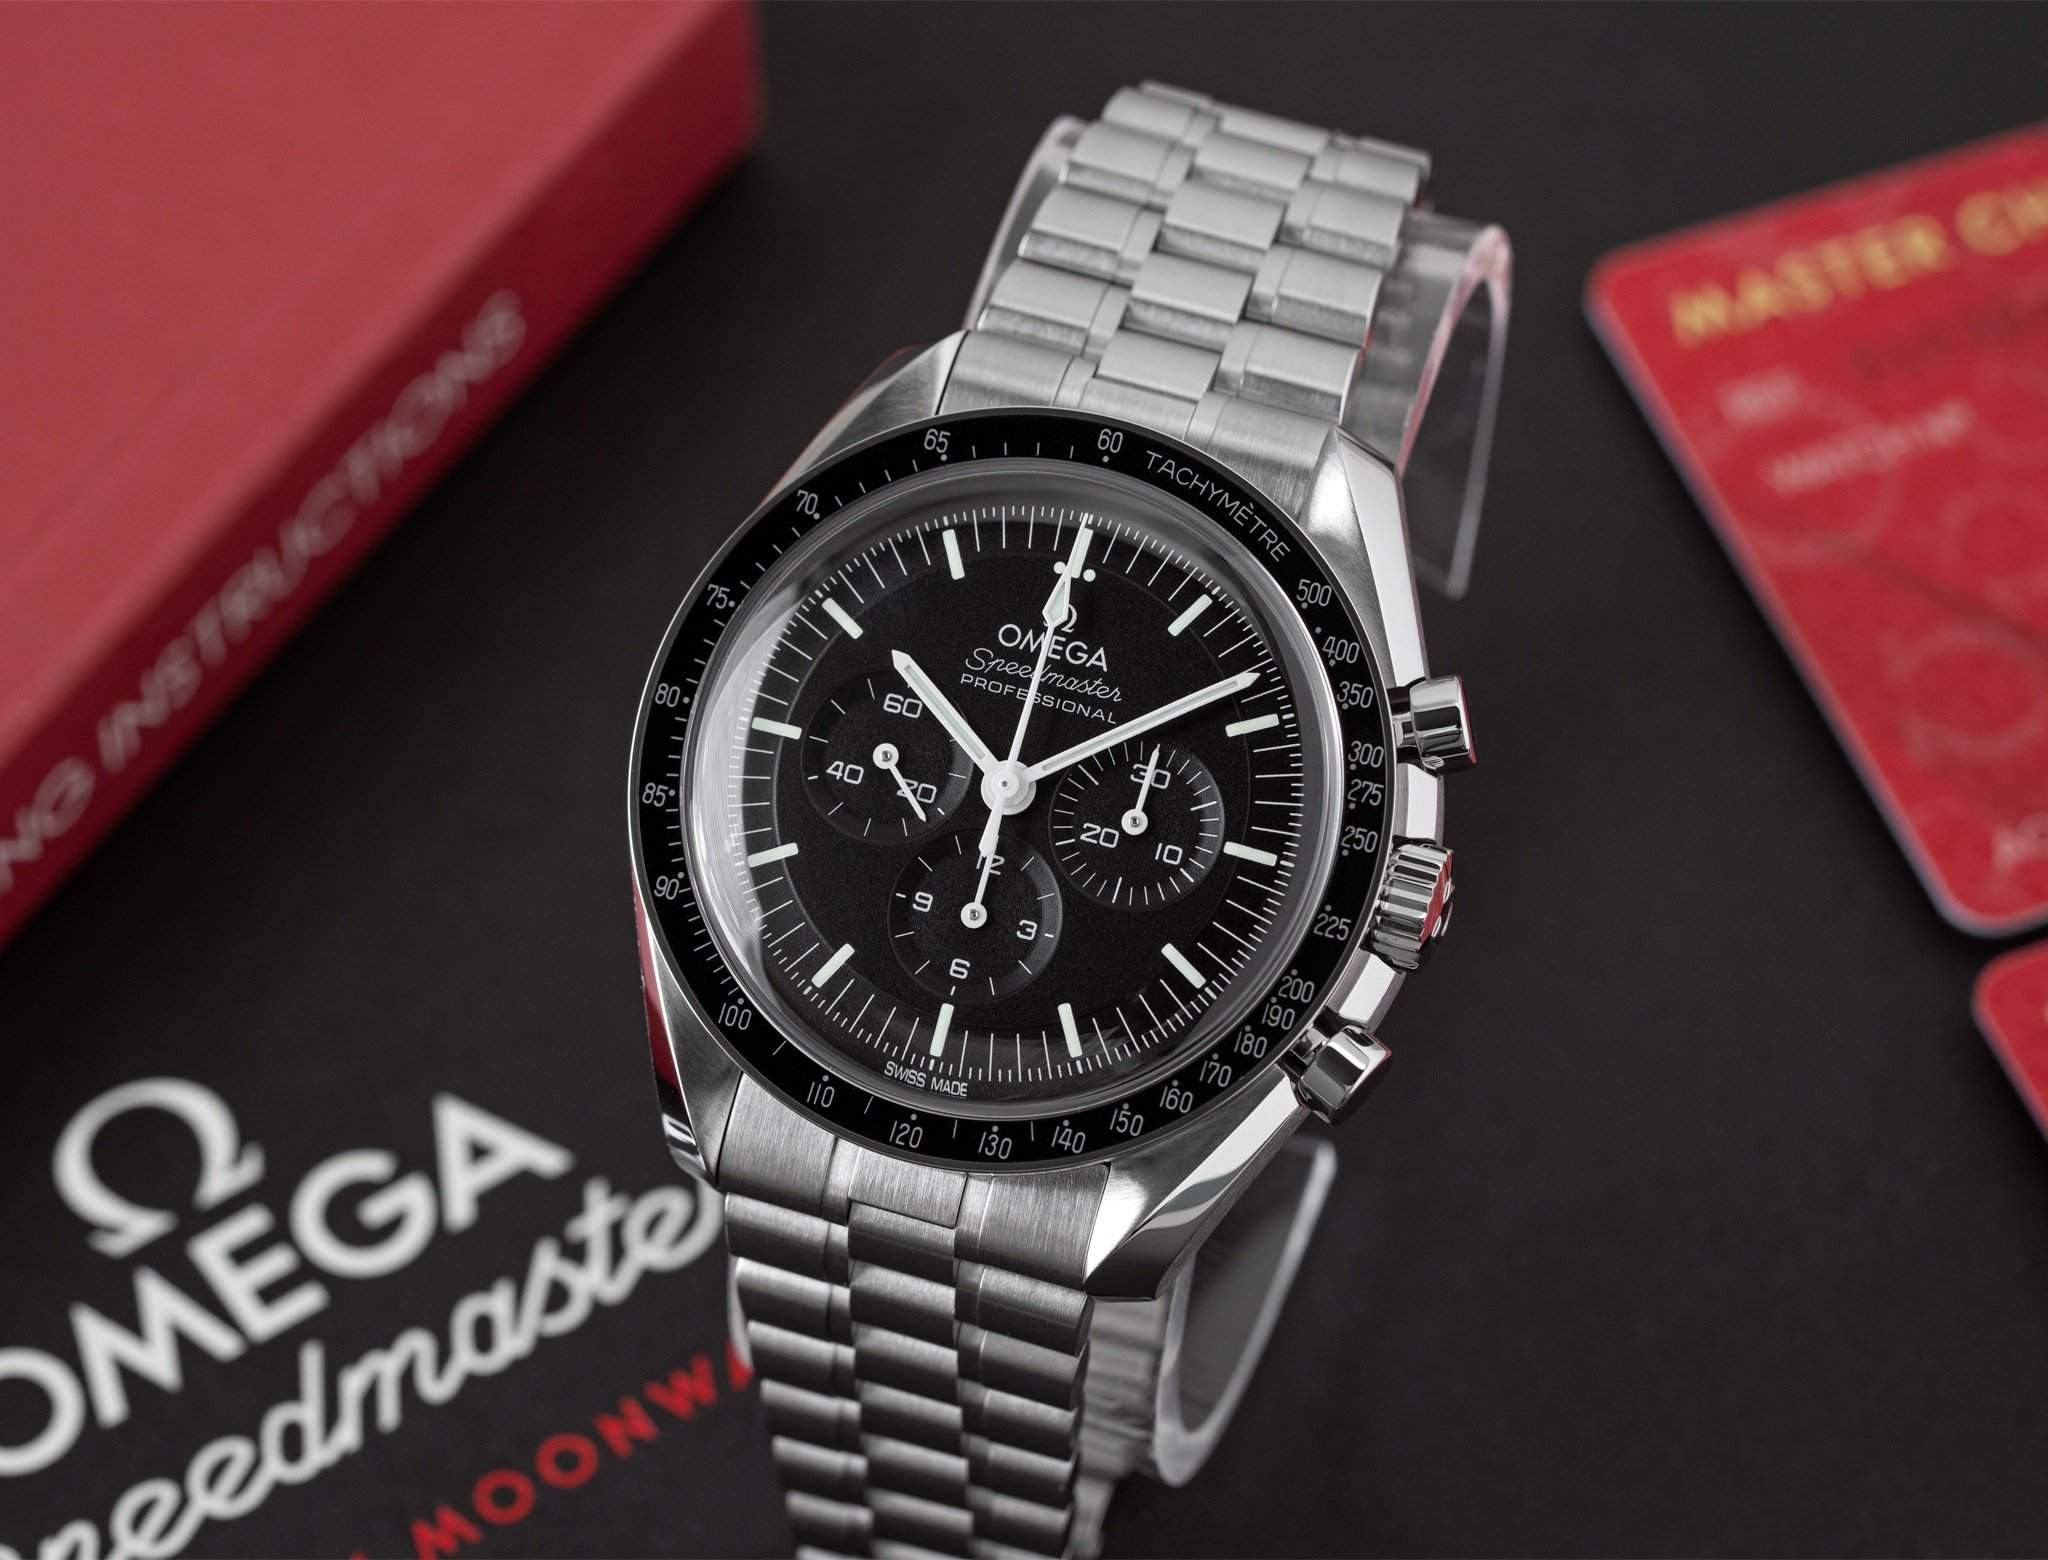 A Moonwatch for less than $6,000, really?